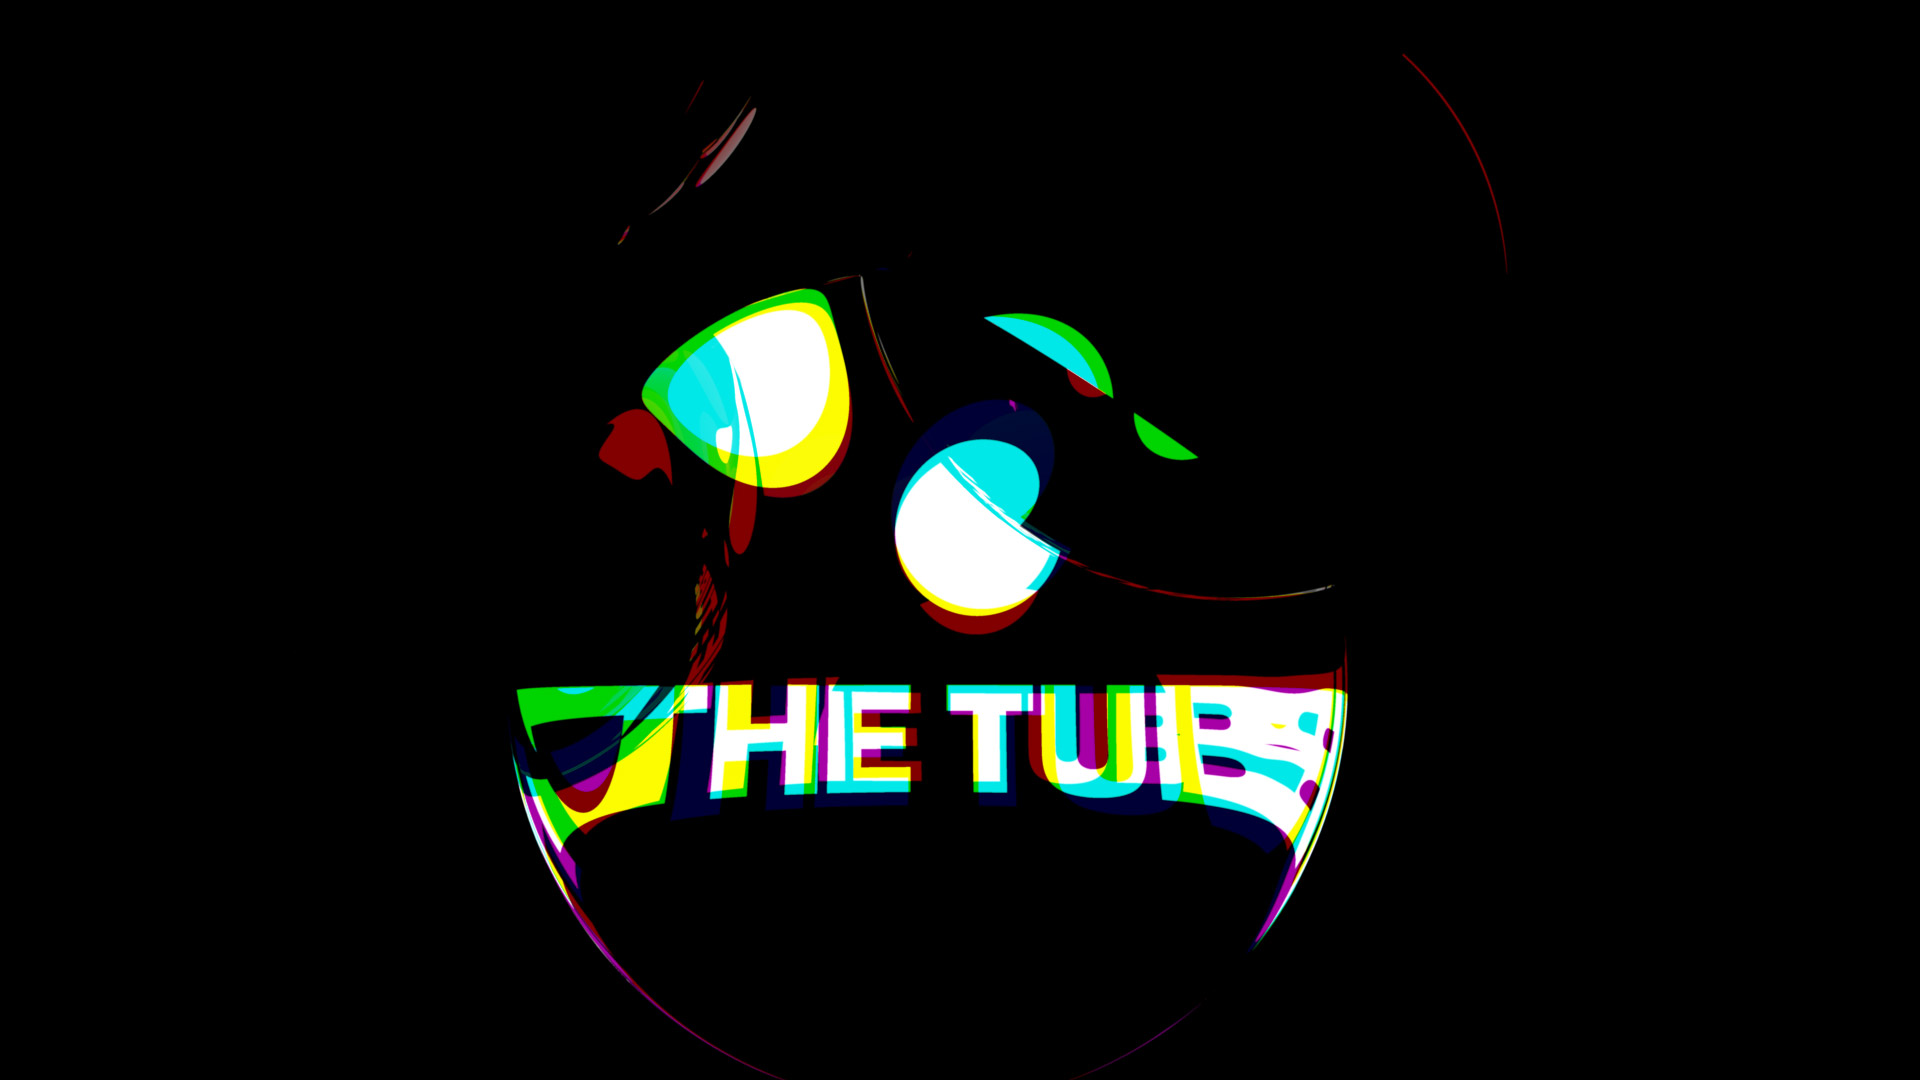 The Tube Channel Branding Refraction Video